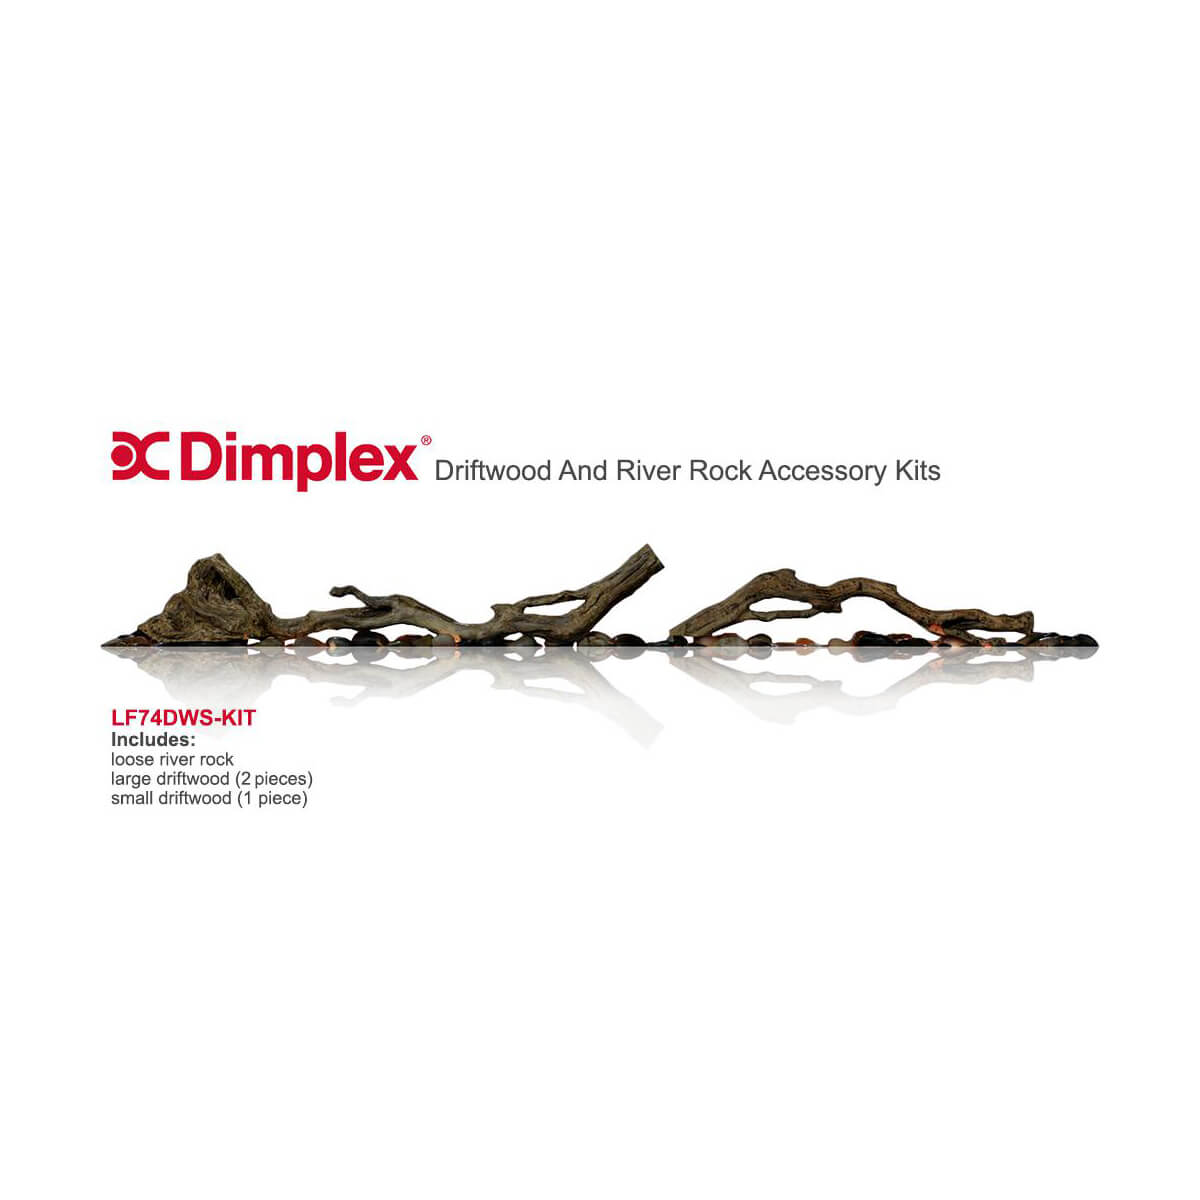 Dimplex Driftwood & River Rock Accessory Kit for 74